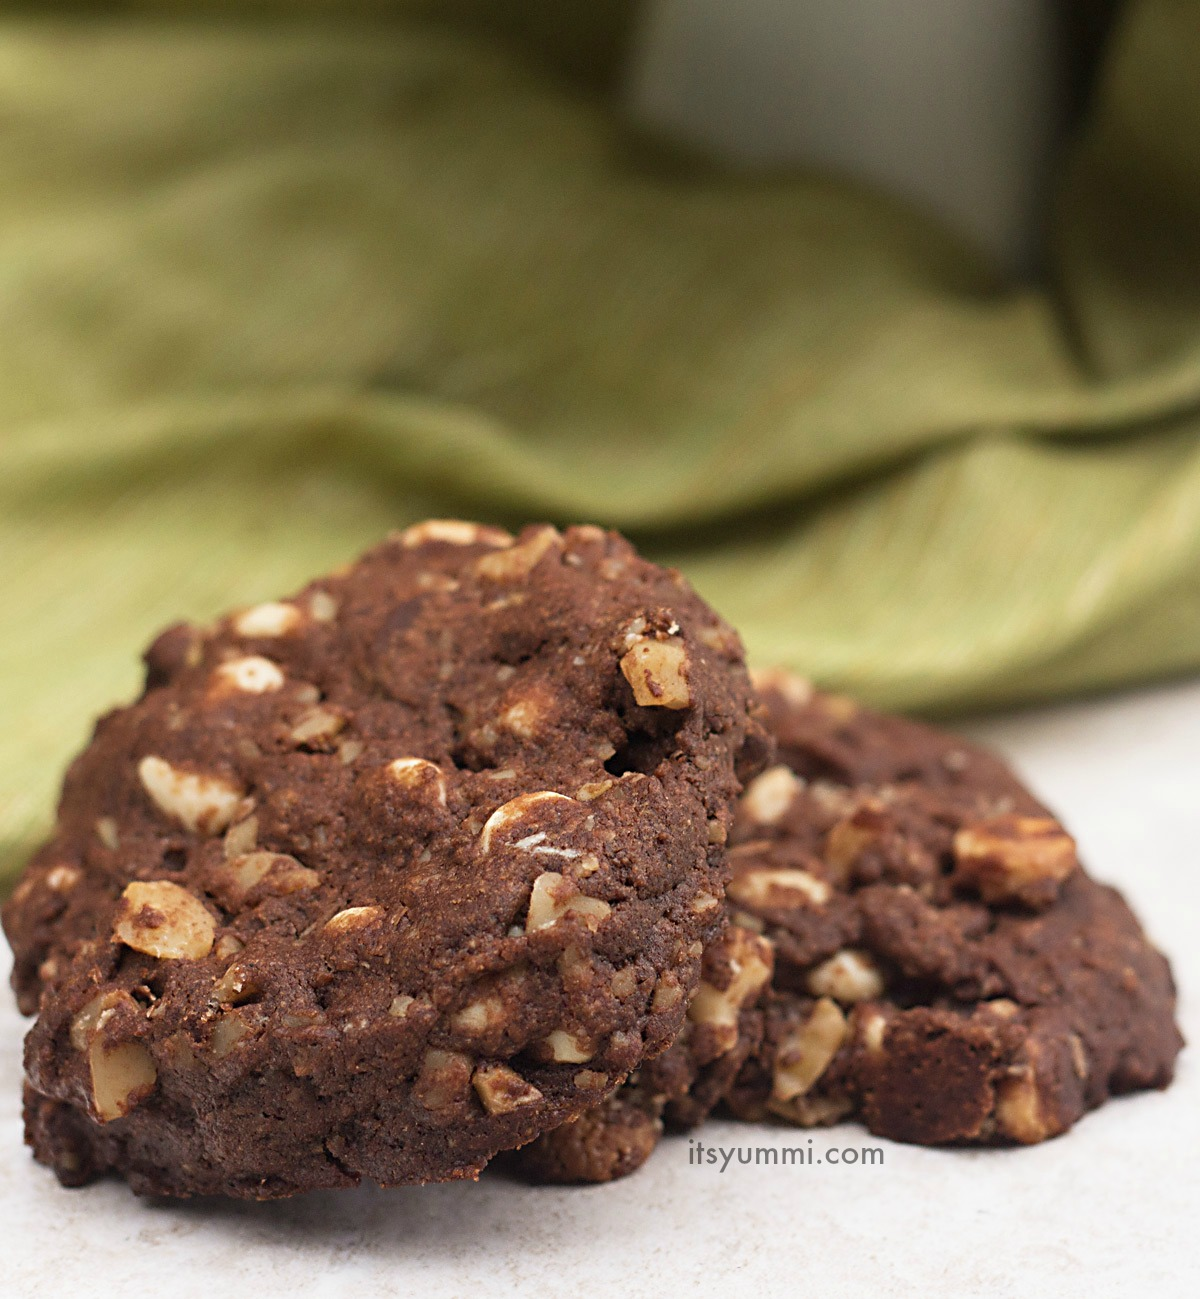 ... cookies from basic n delicious banana oatmeal chocolate chip cookies